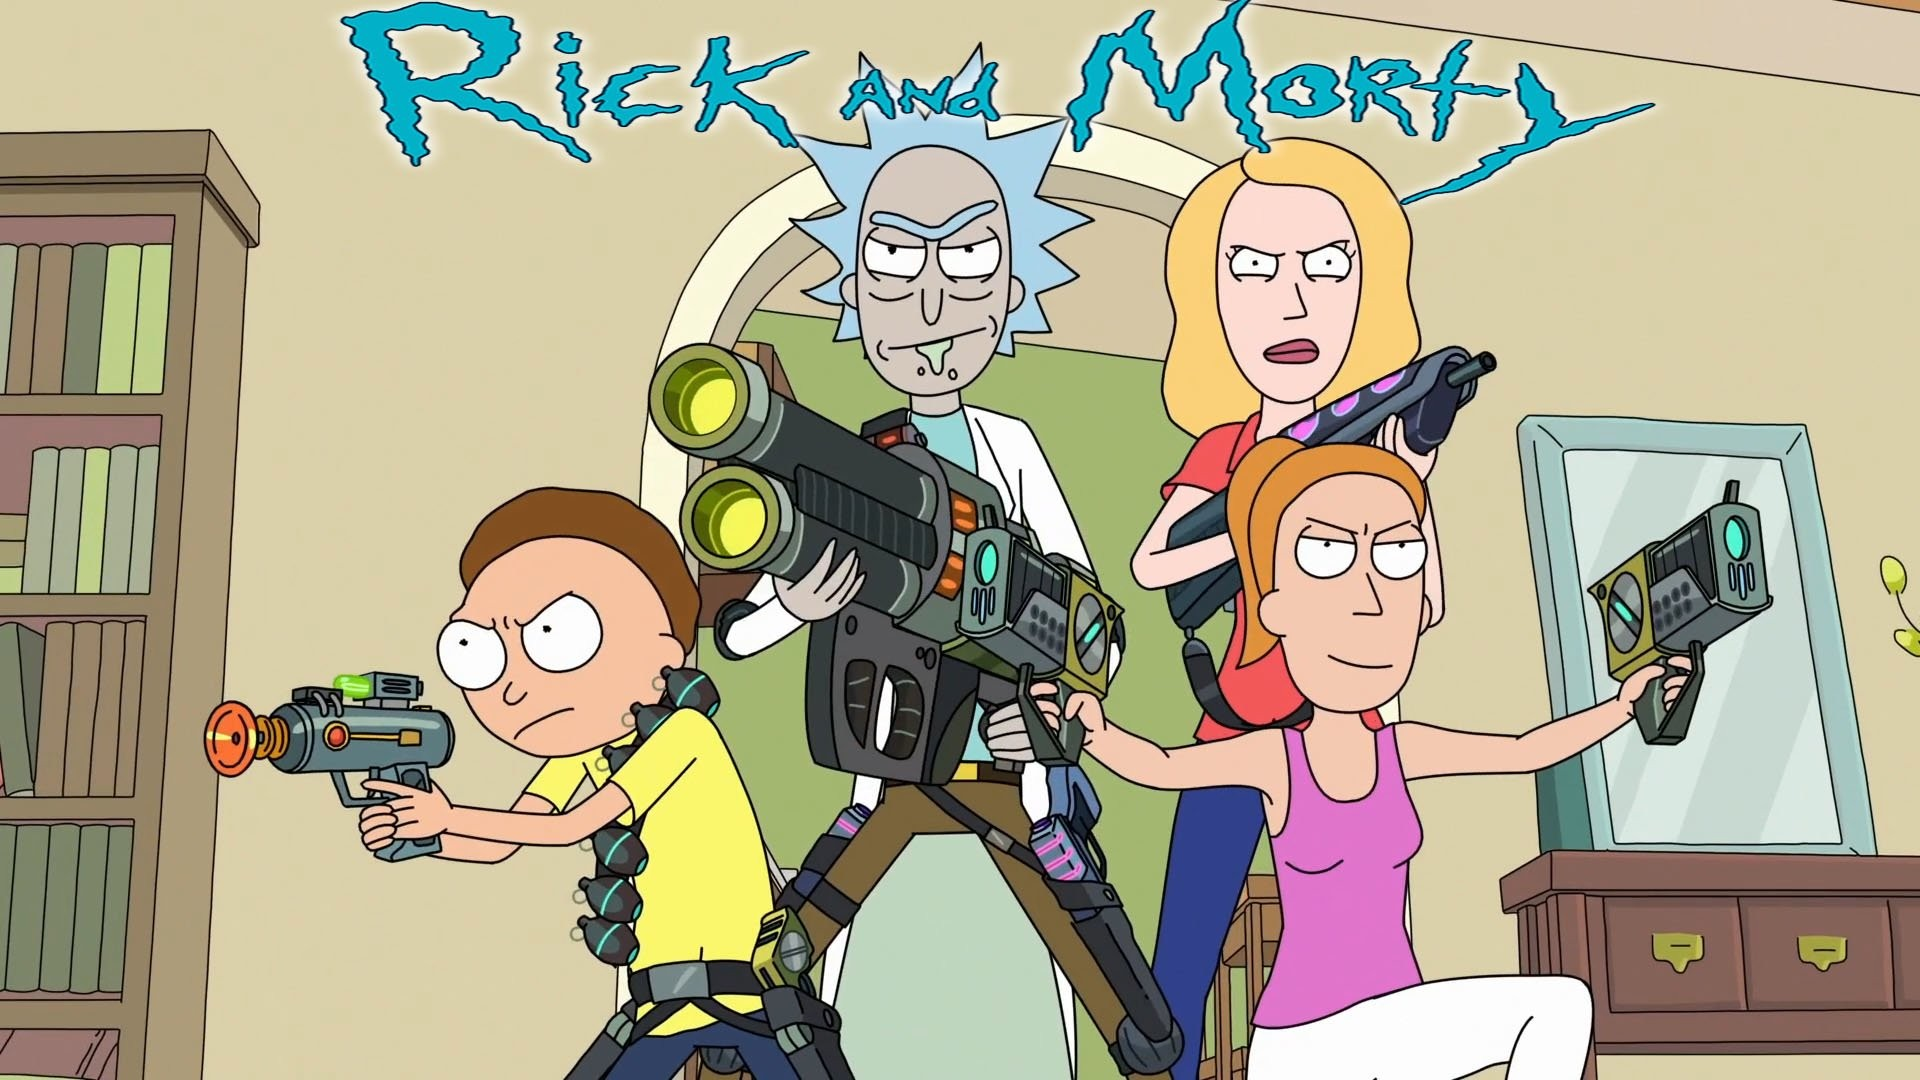 Rick and Morty Season 4 Episode 5 Live Stream and Watch Online